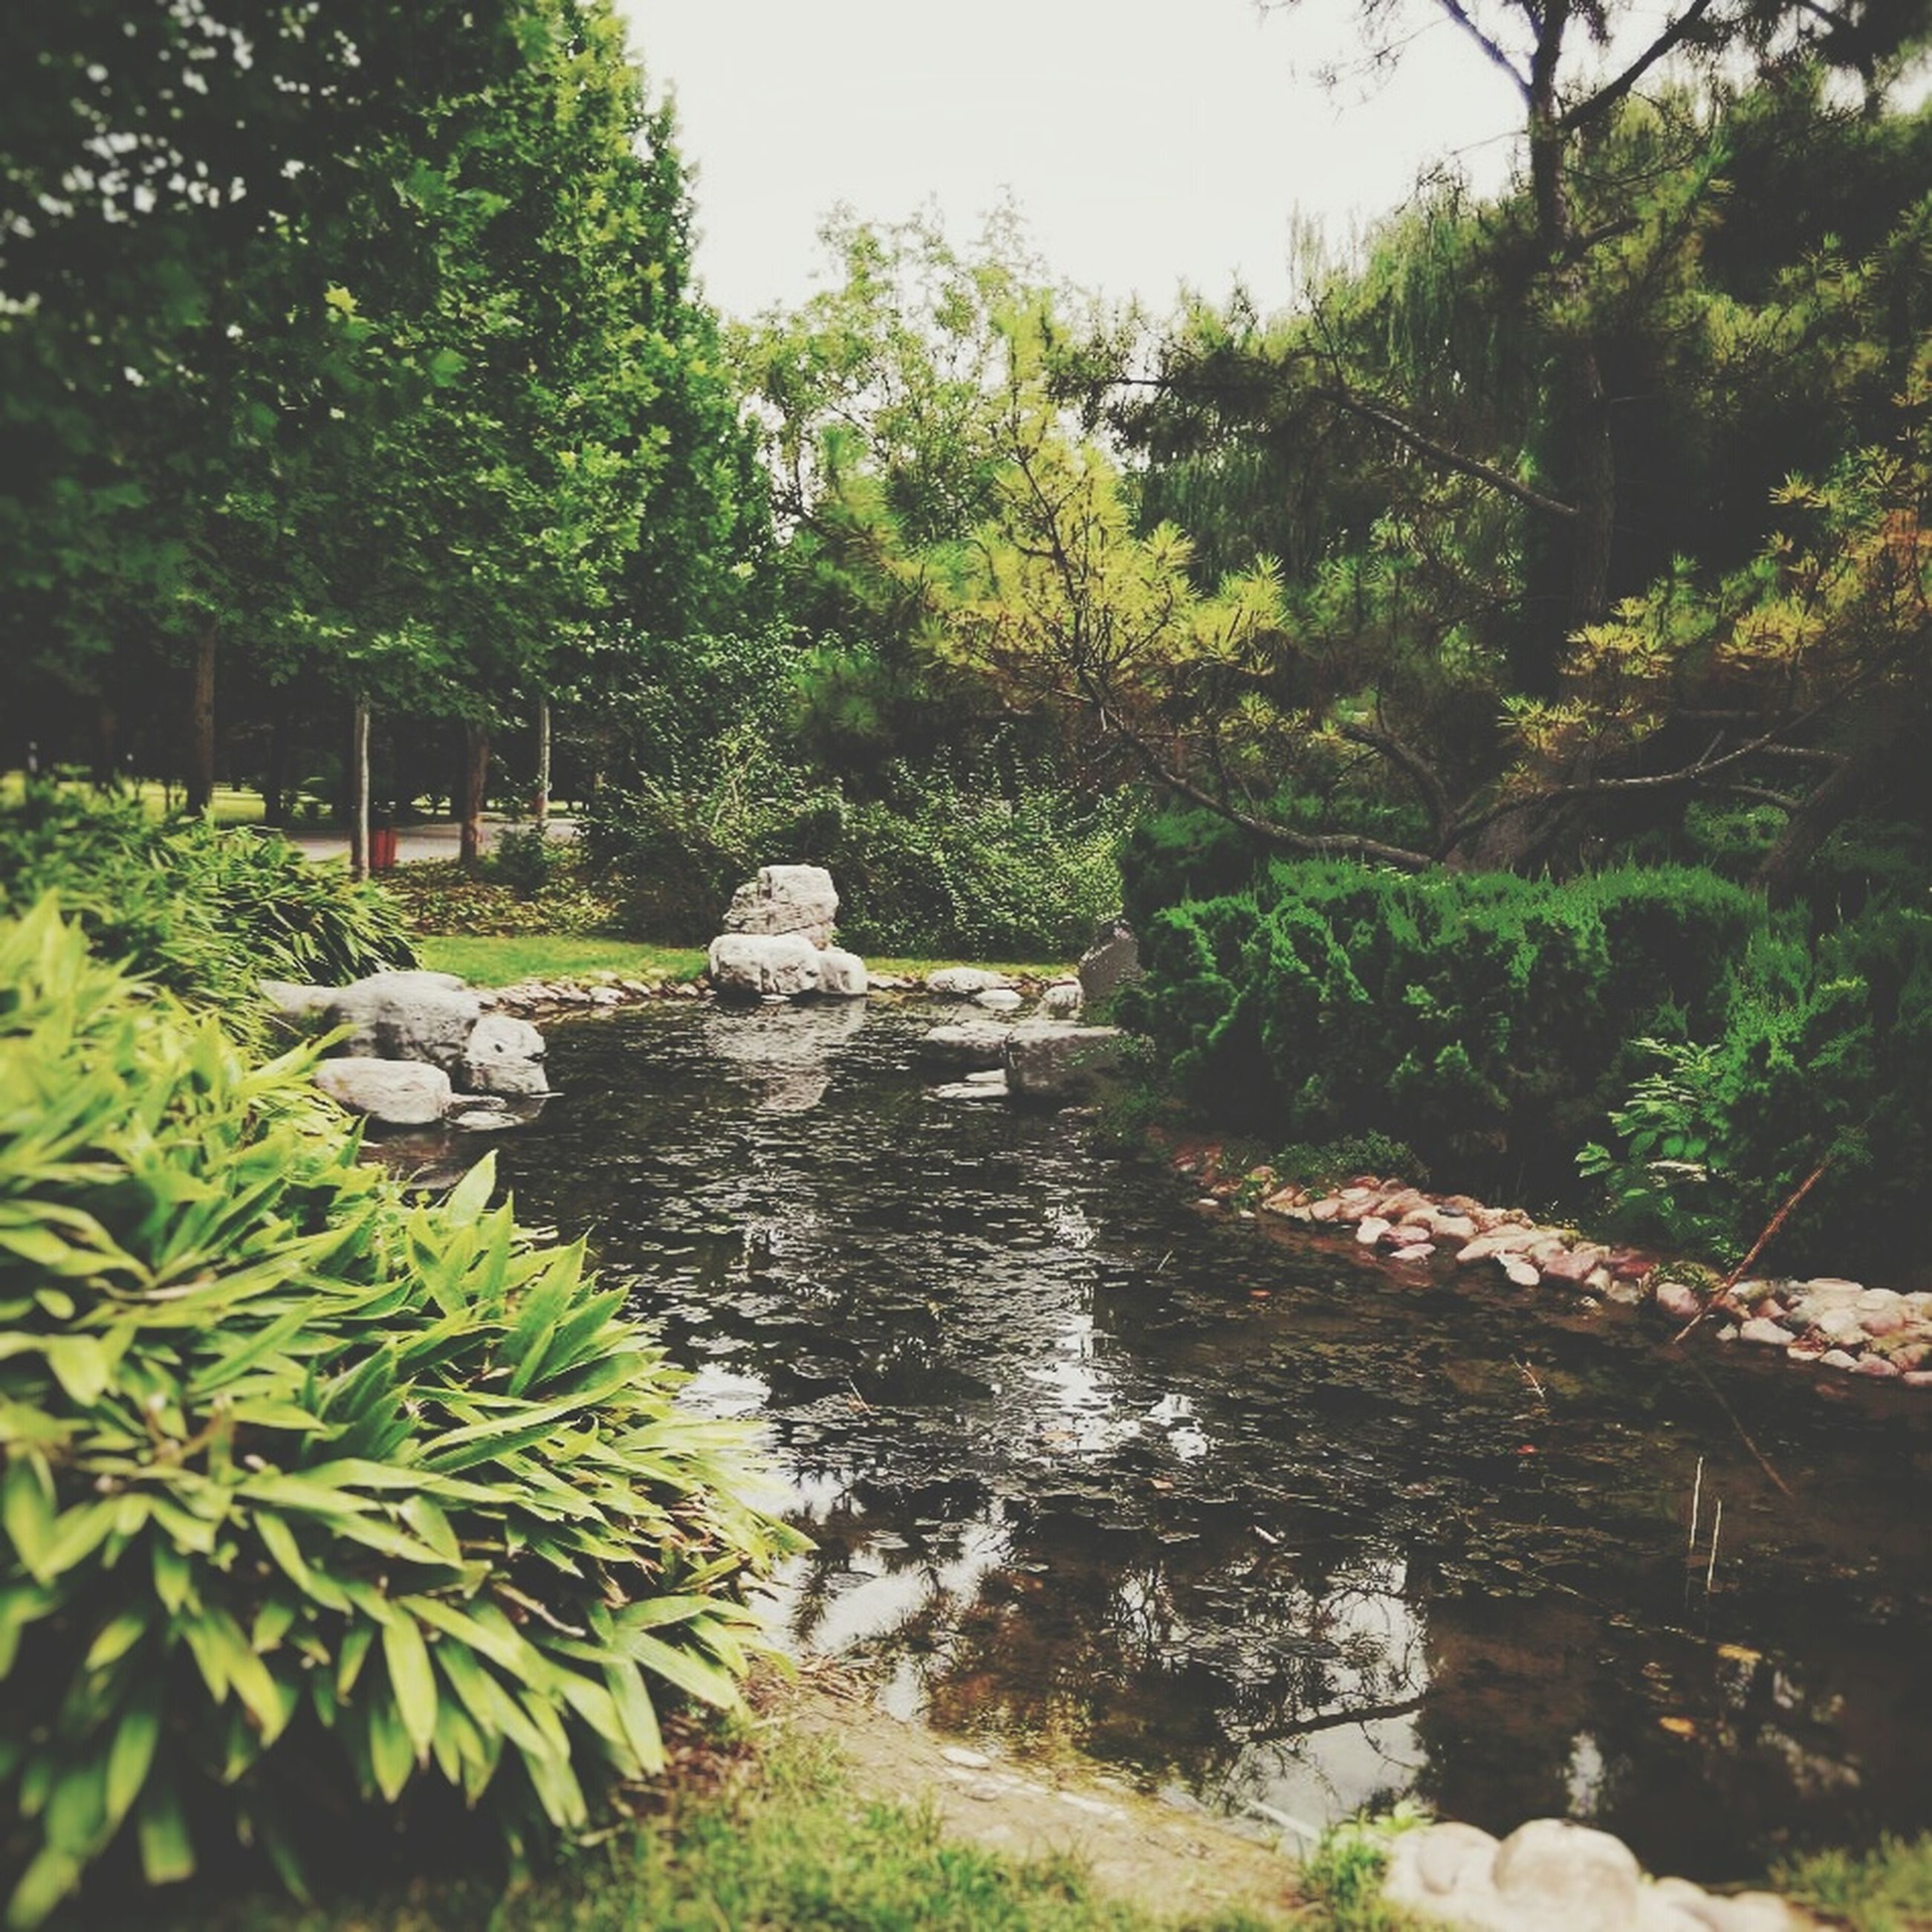 water, tree, growth, green color, tranquility, nature, plant, rock - object, beauty in nature, tranquil scene, scenics, river, day, pond, park - man made space, outdoors, green, no people, stream, lush foliage